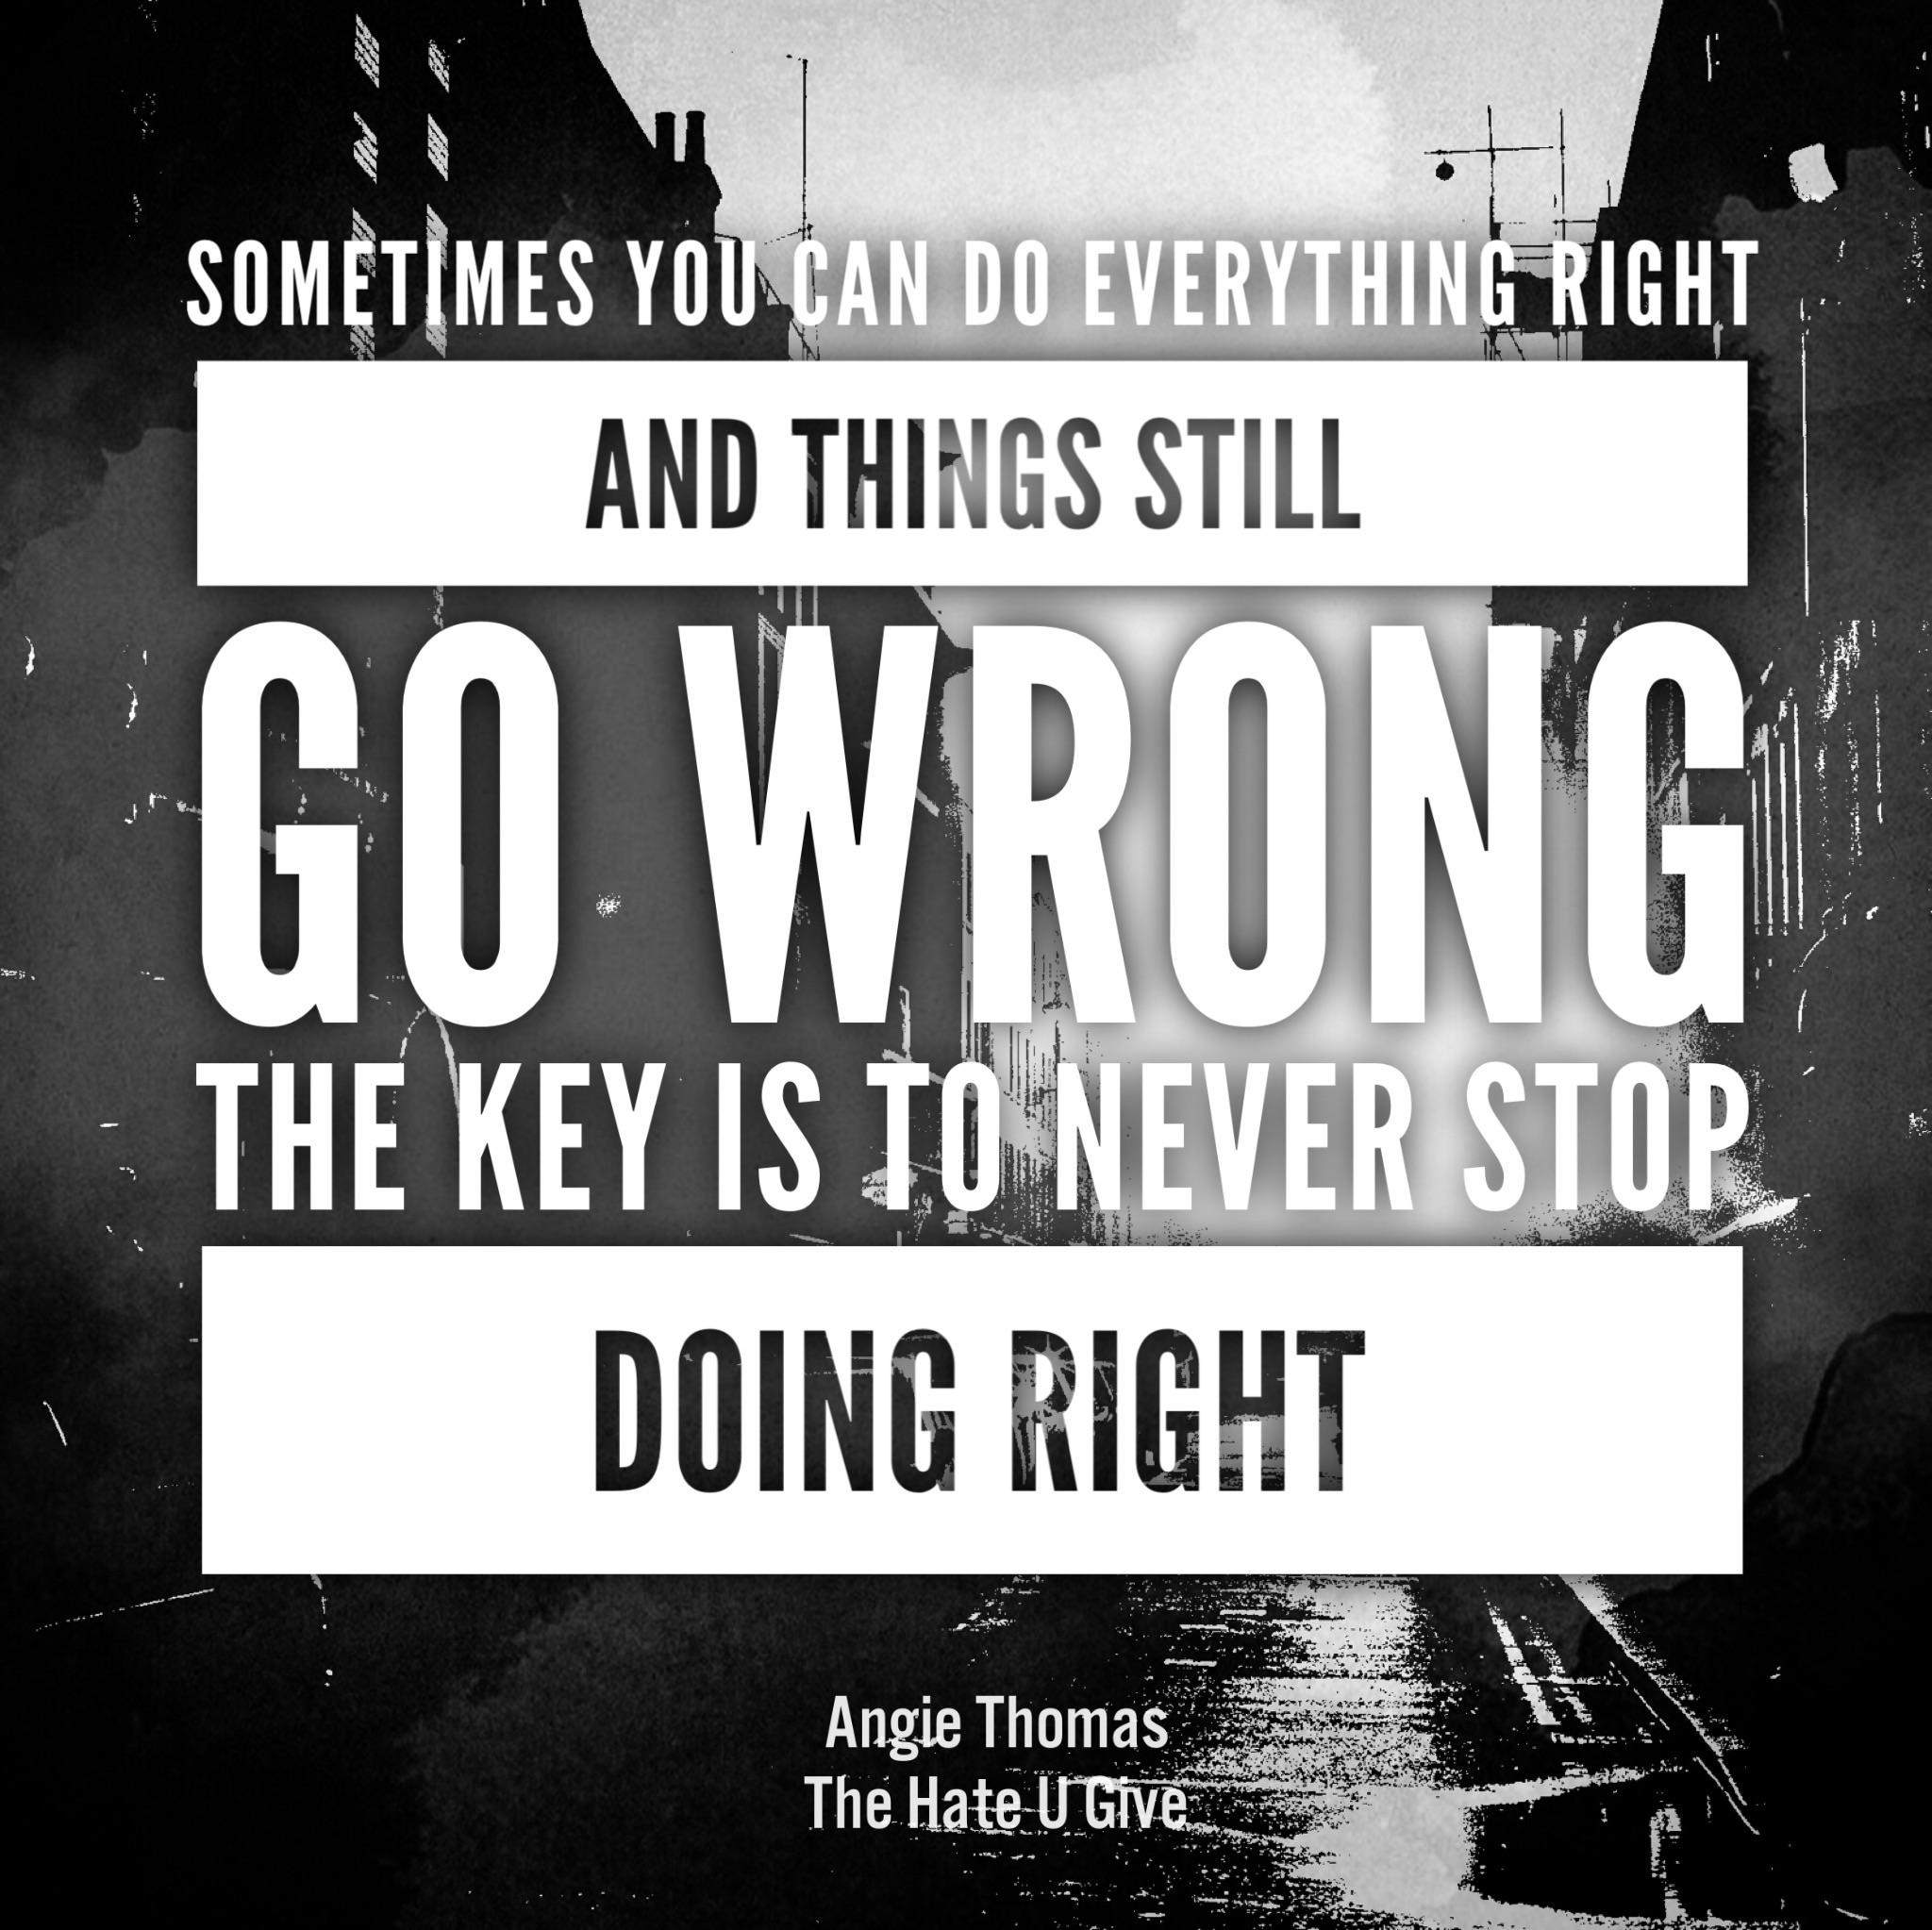 """""""Sometimes you can do everything right and things still go wrong. The key is to never stop doing right."""" -Angie Thomas [2048×2046] [OC]"""